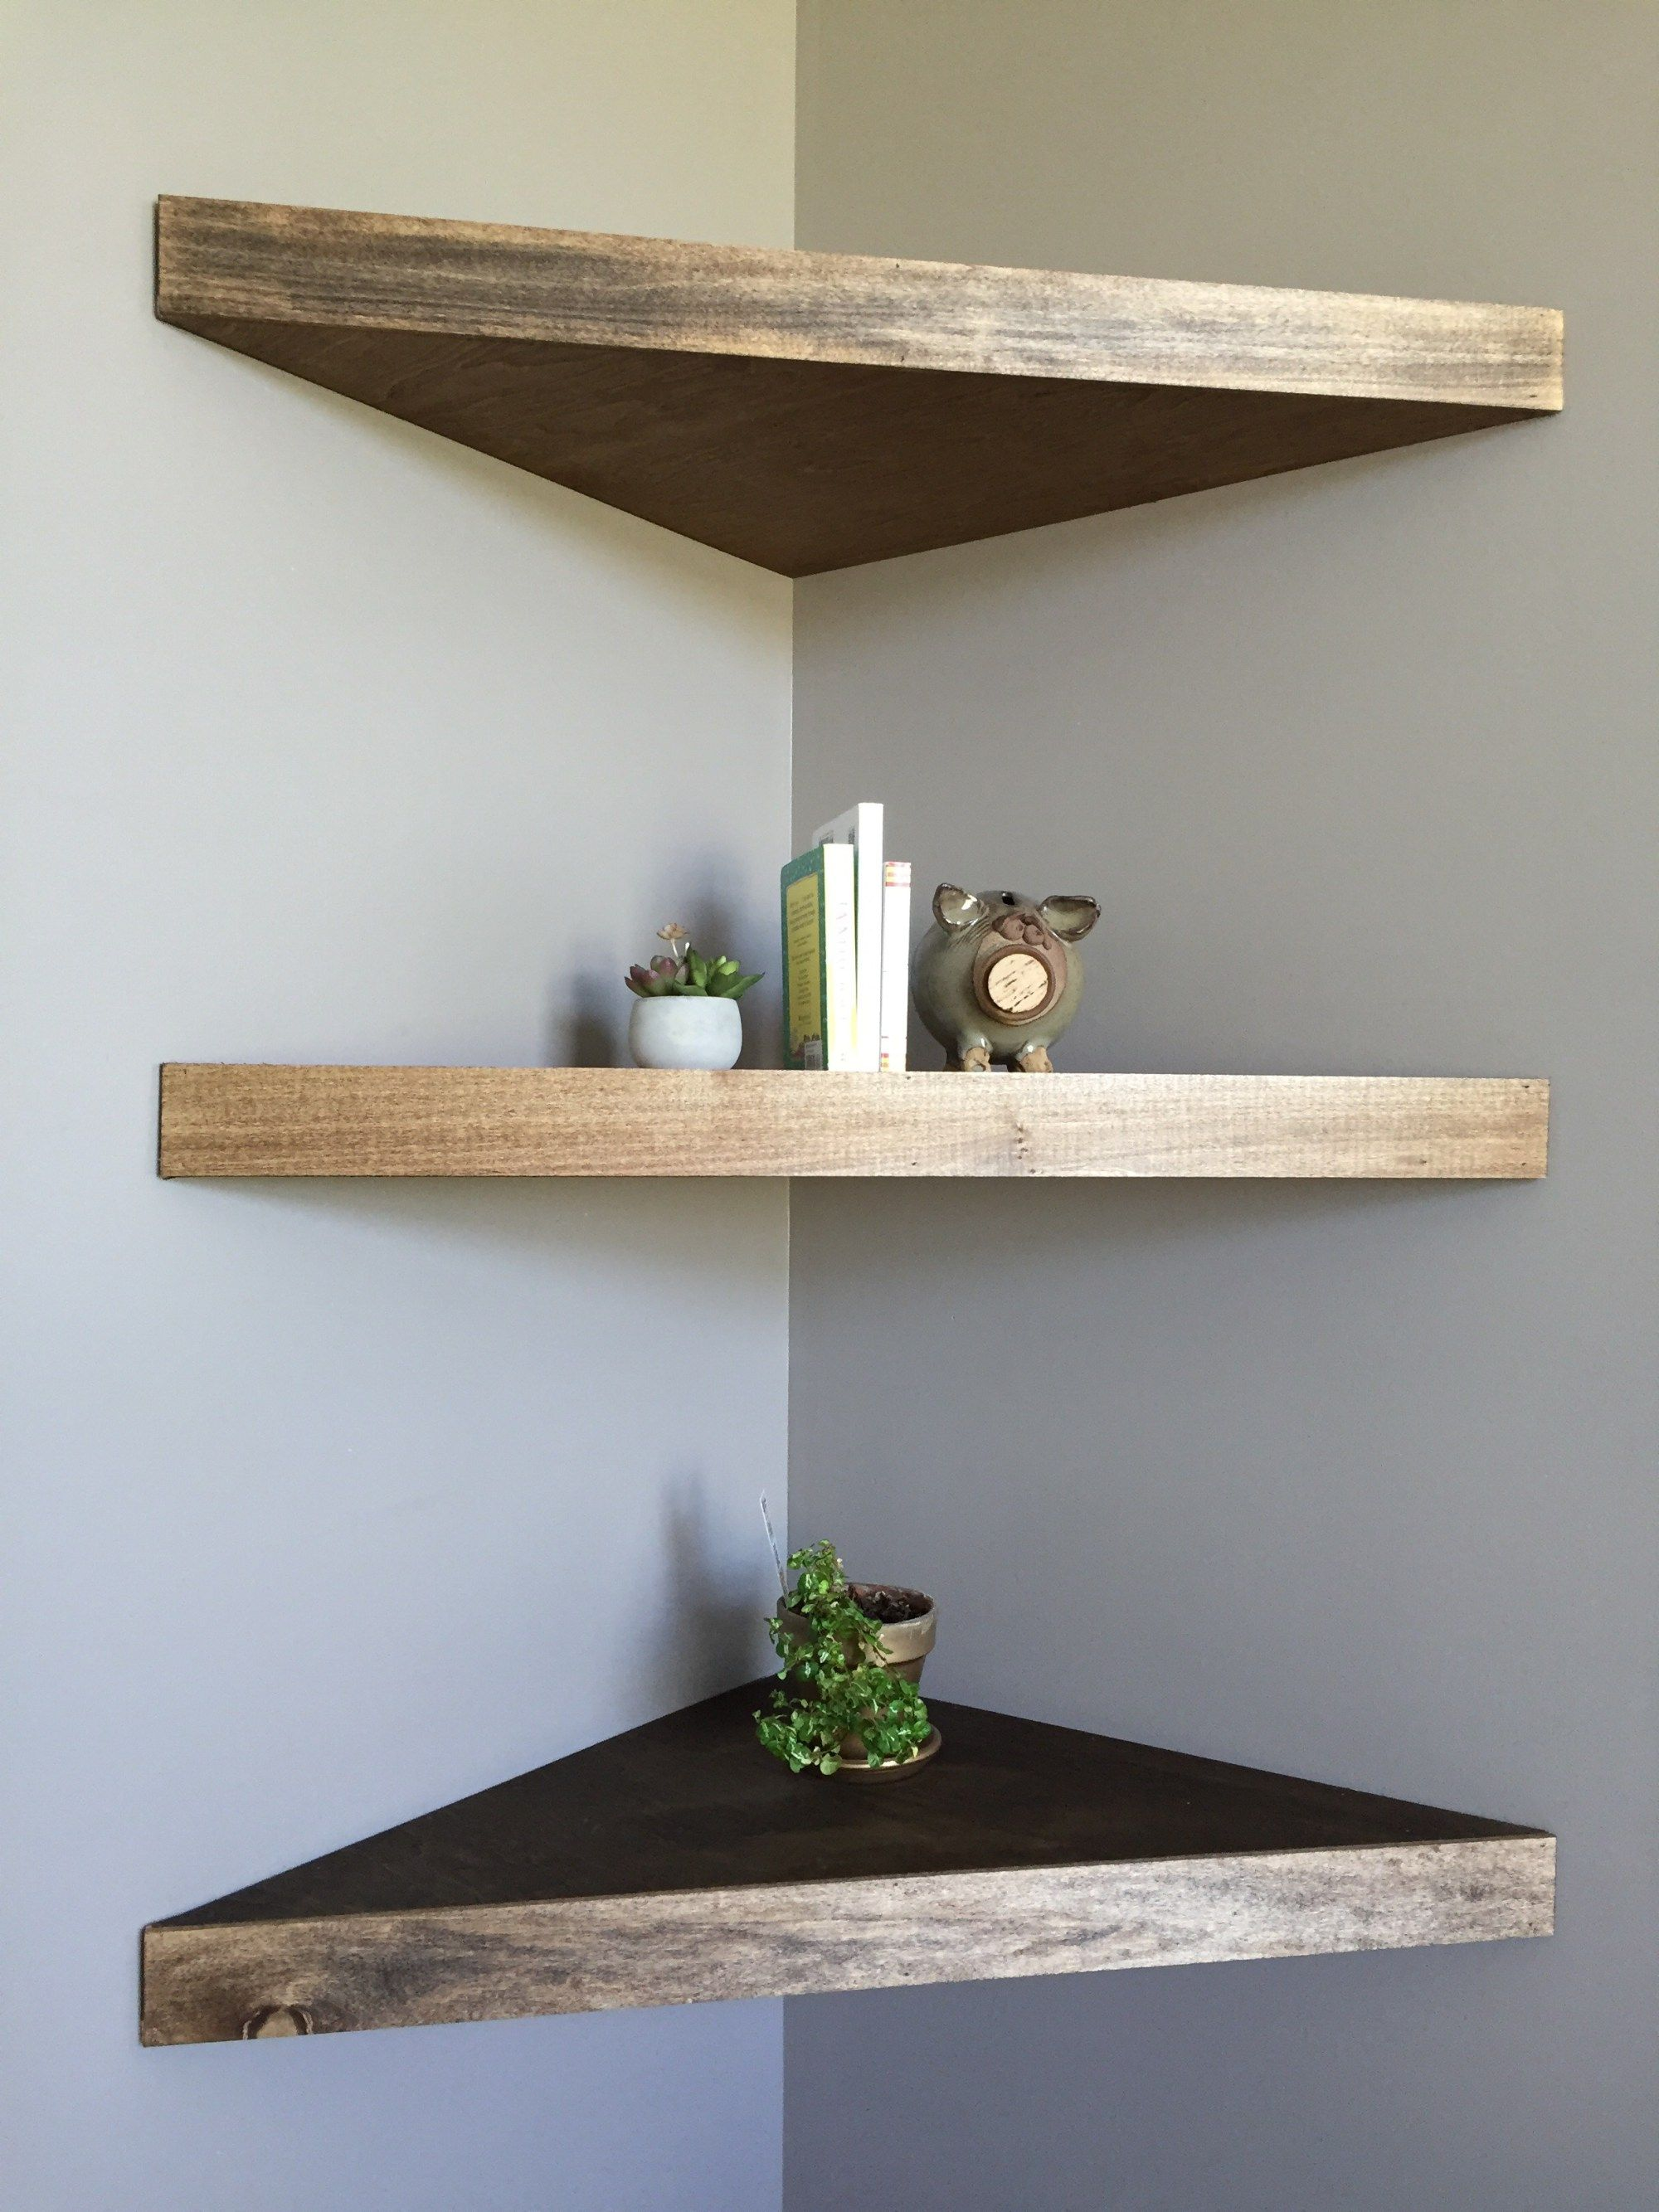 diy floating corner shelves for the home inch shelf best garage storage book hanging pottery barn chunky bookshelf bathroom over sink cabinets canadian tire rack laminate kitchen